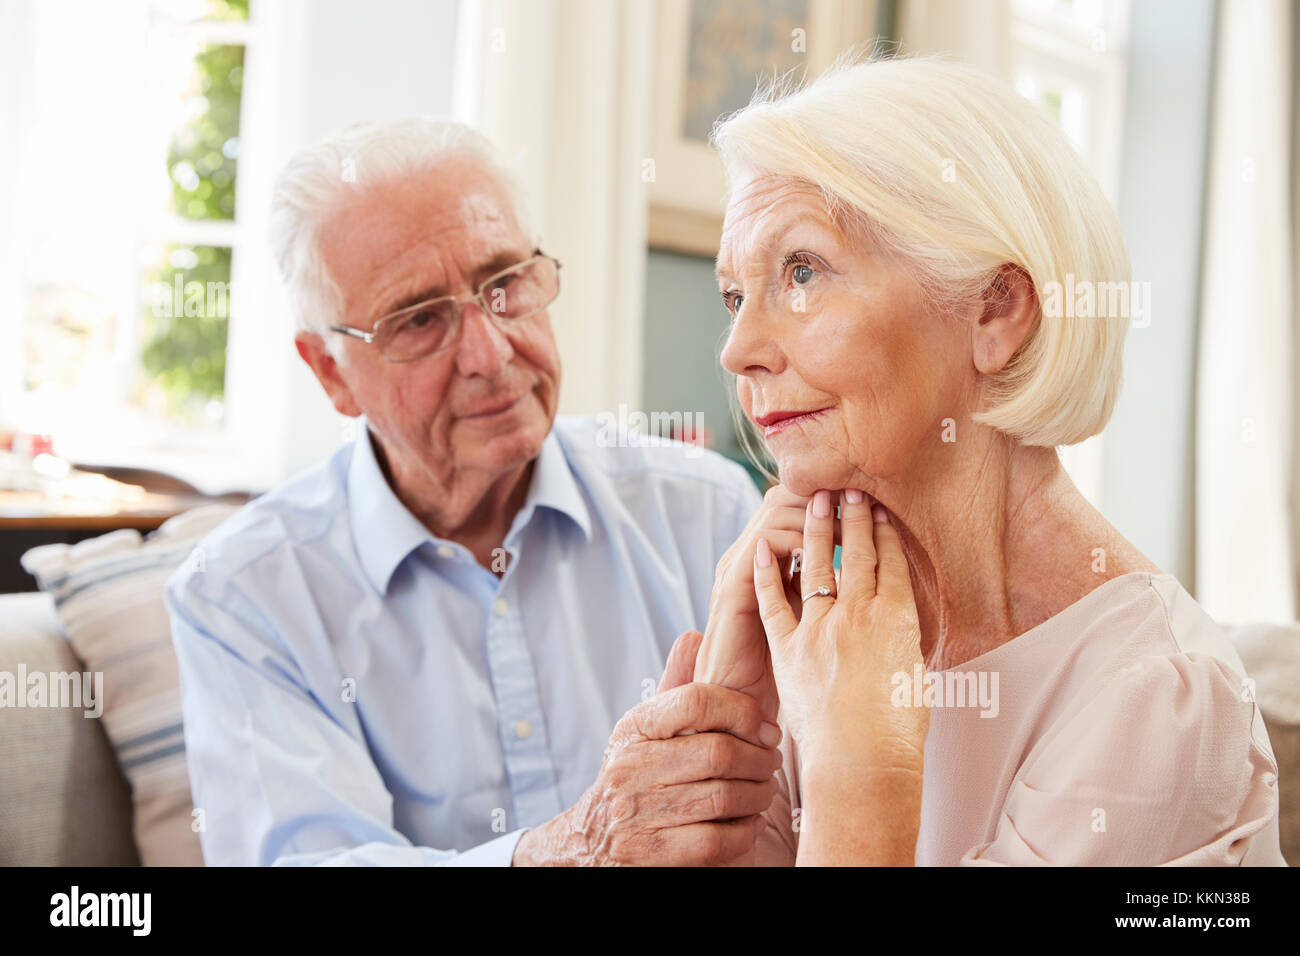 Senior Man Comforting Woman With Depression At Home Stock Photo